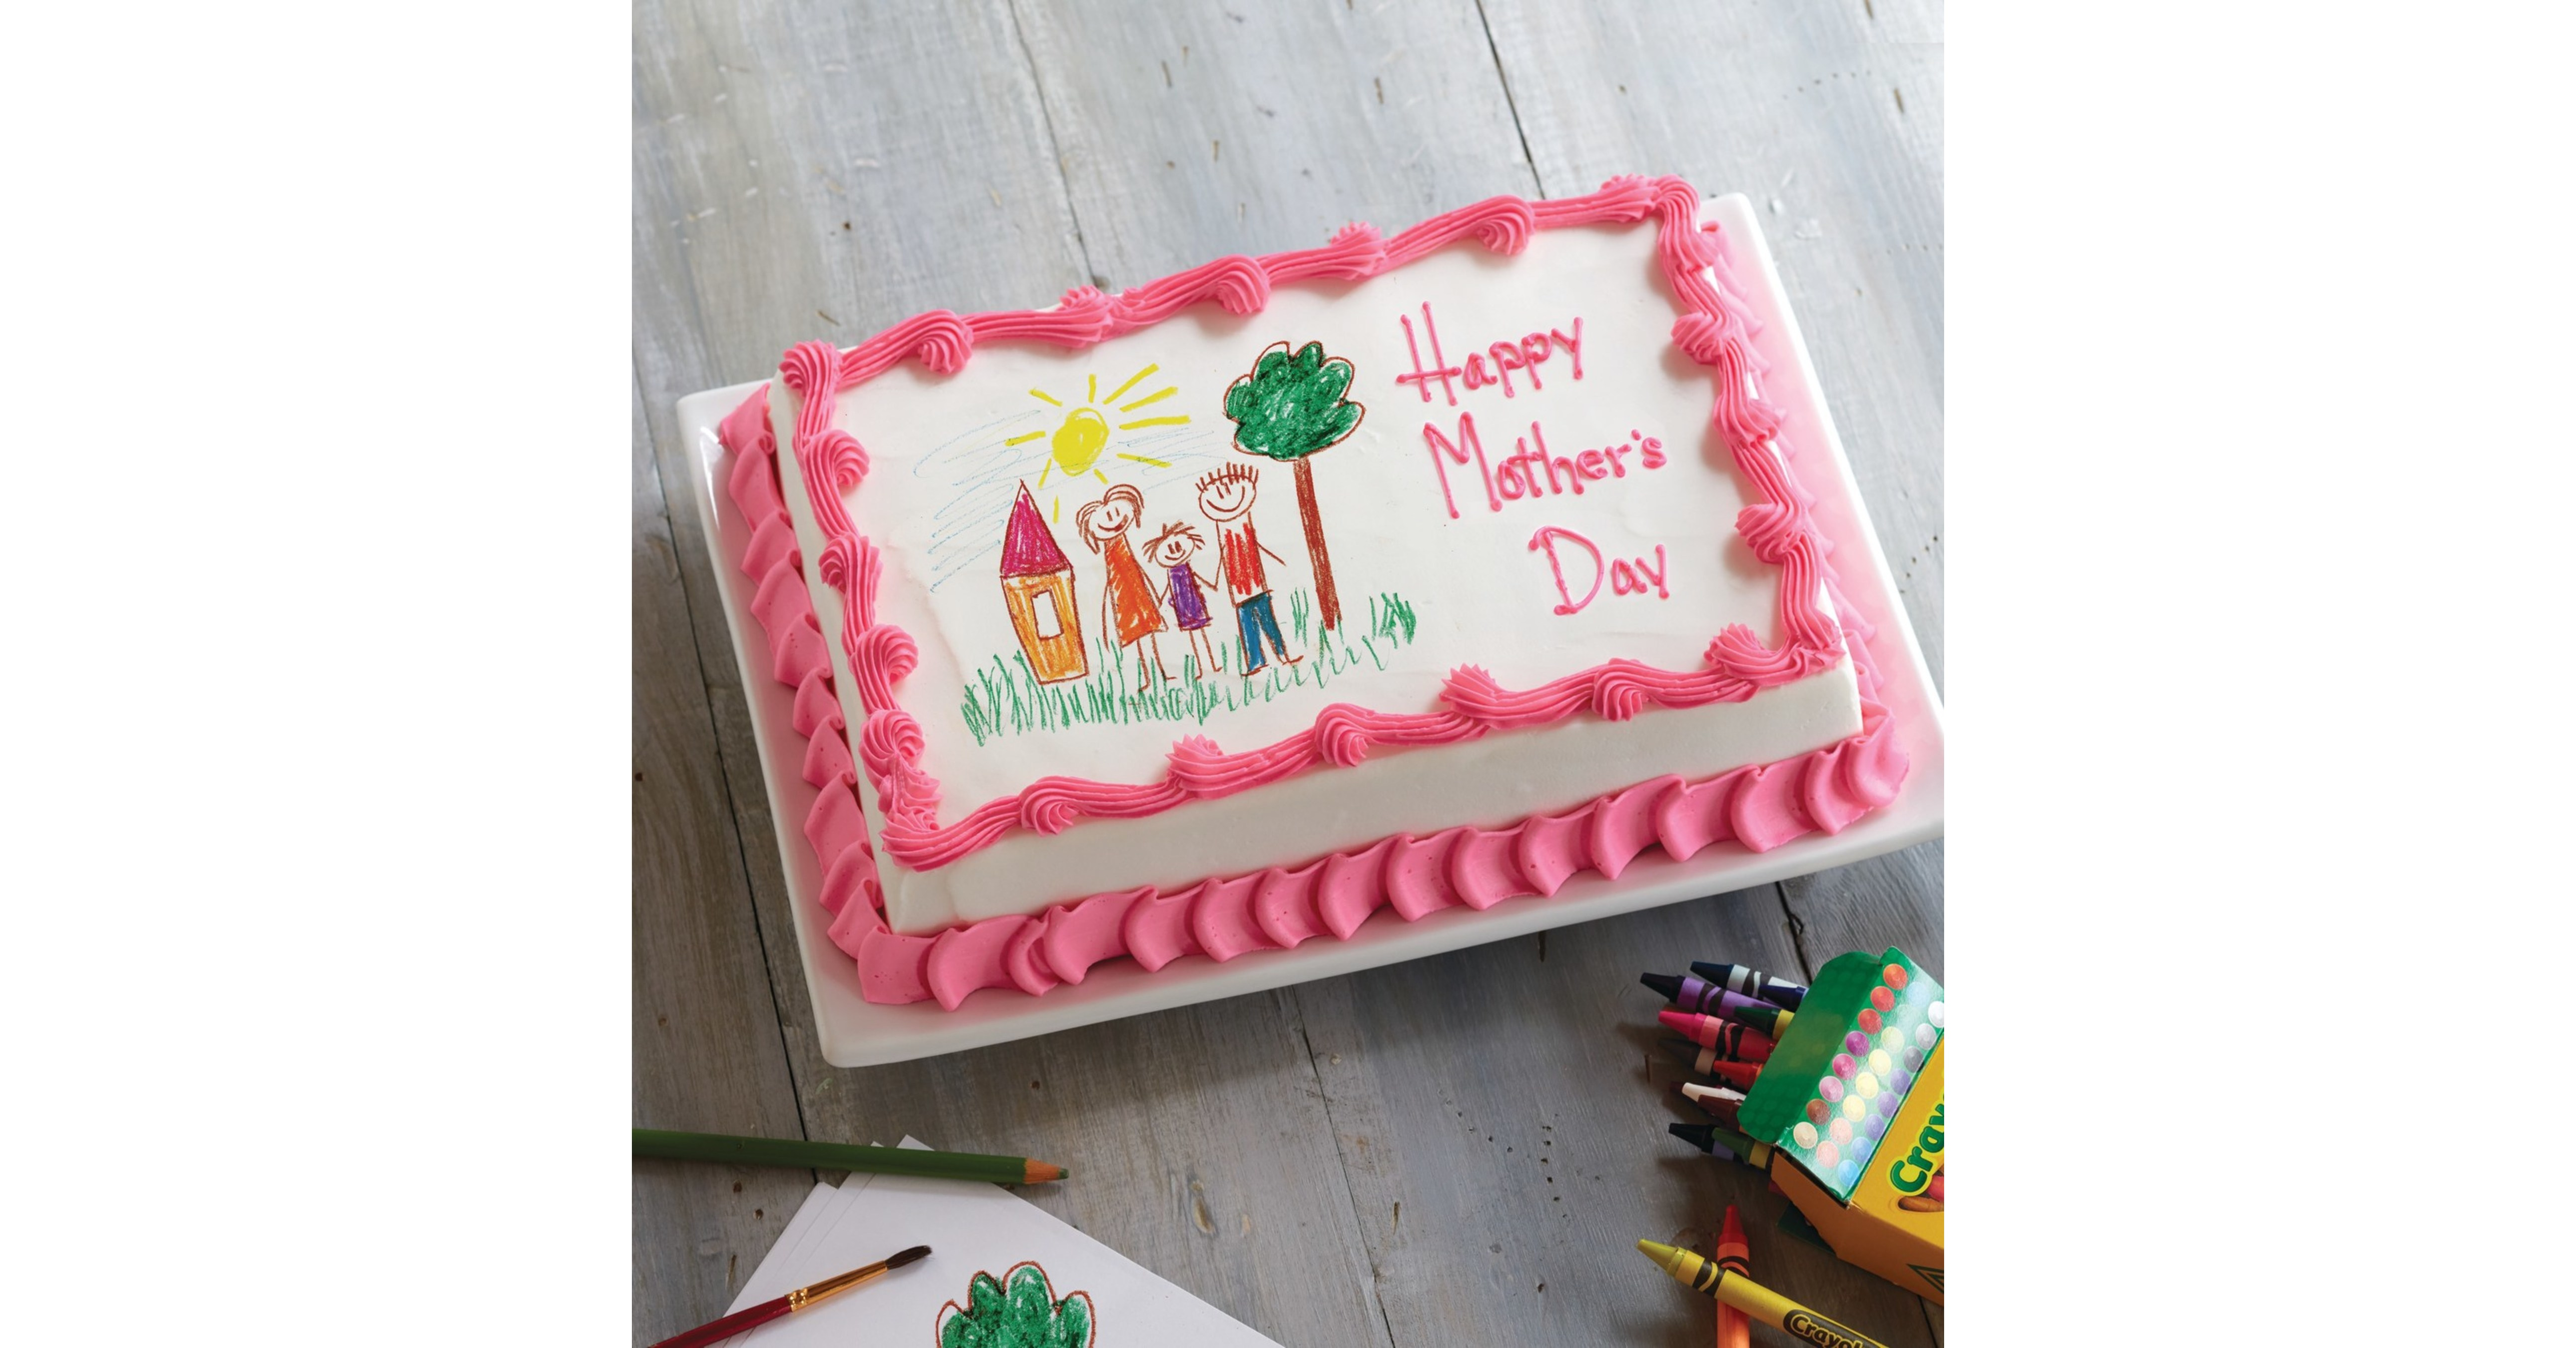 Pleasing Carvel Launches Customized Card On A Cake Campaign This Mothers Day Funny Birthday Cards Online Necthendildamsfinfo